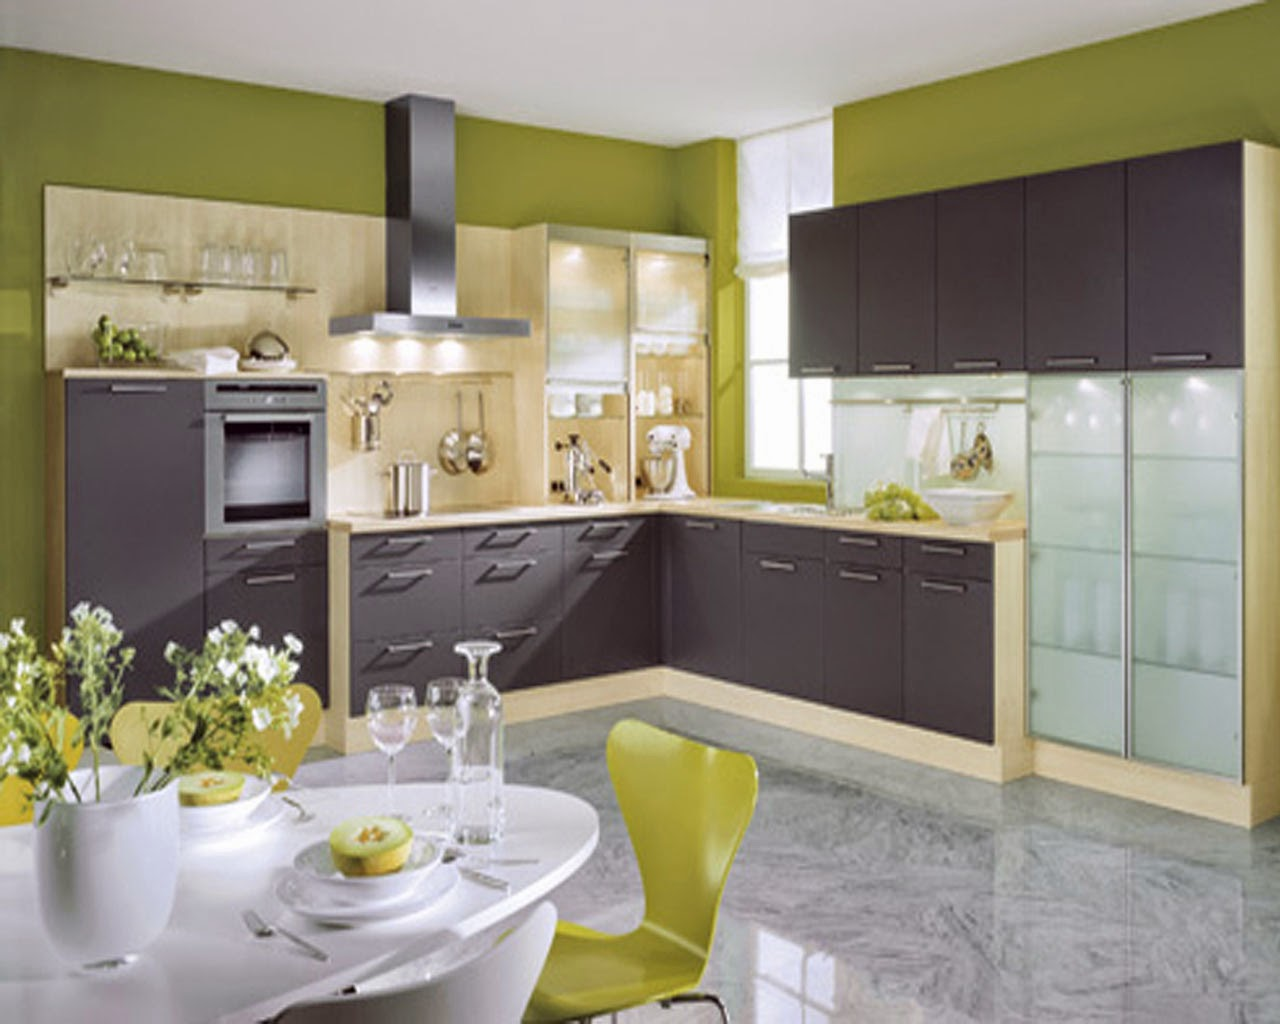 Kitchen designing ideas 2014 freshnist design for Kitchen kitchen design